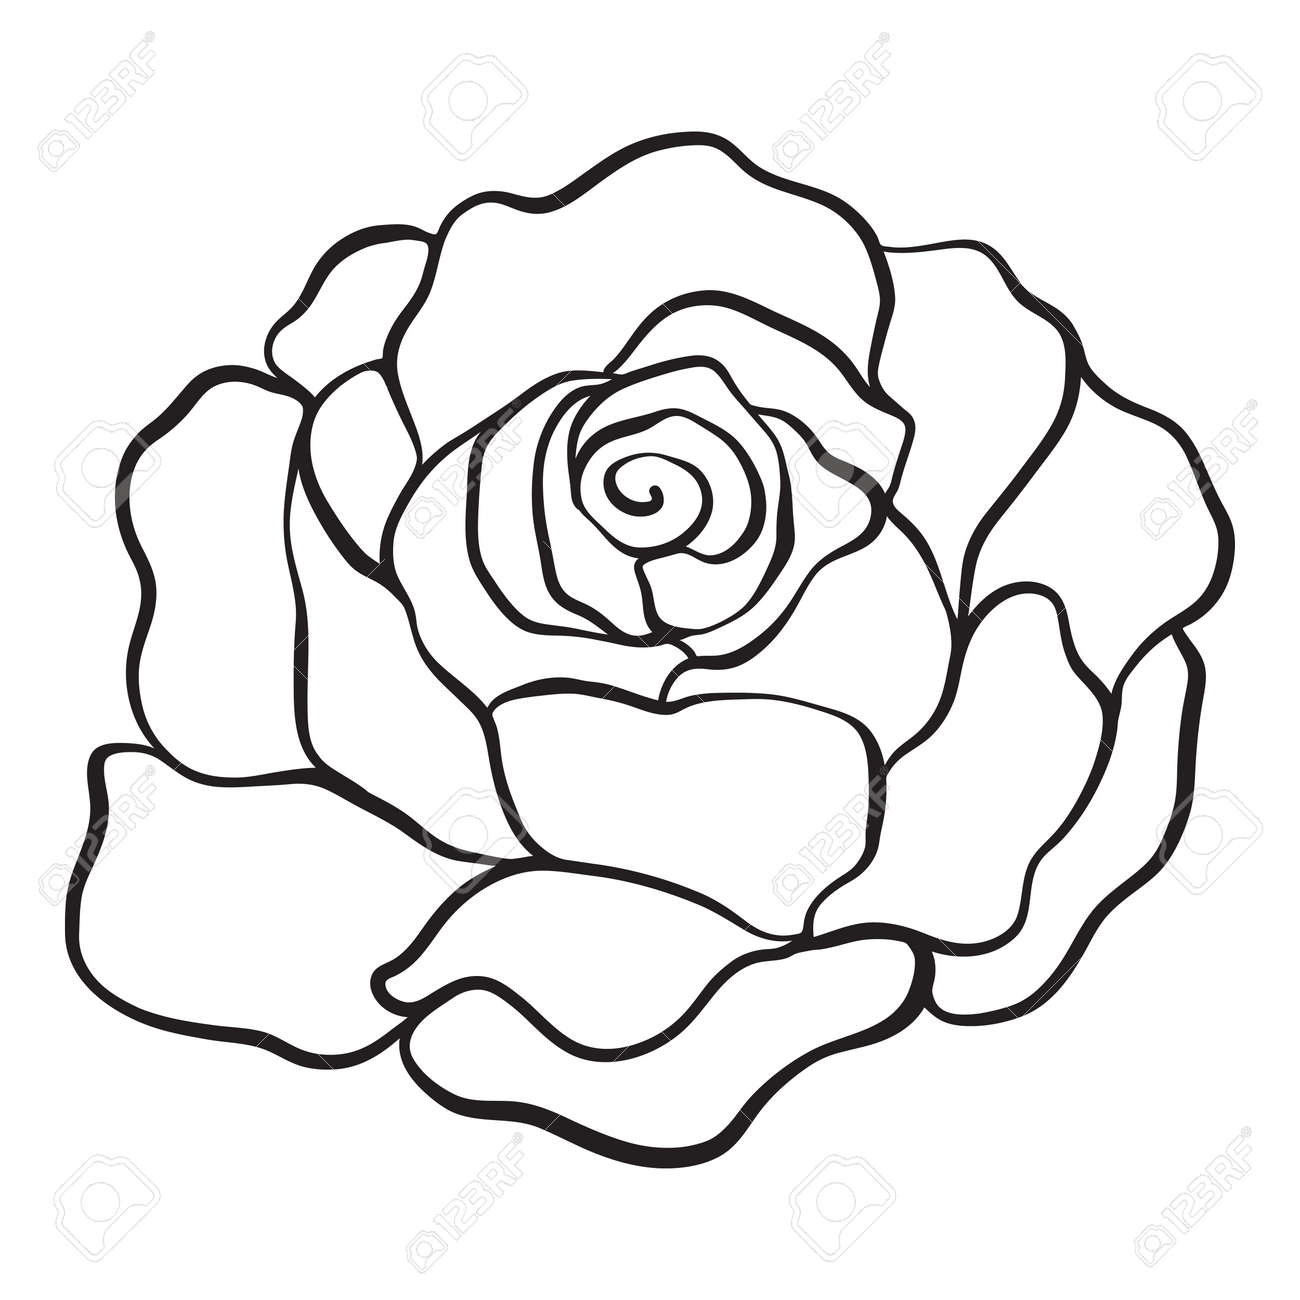 Isolated rose outline drawing stock vector illustration stock vector 85718150